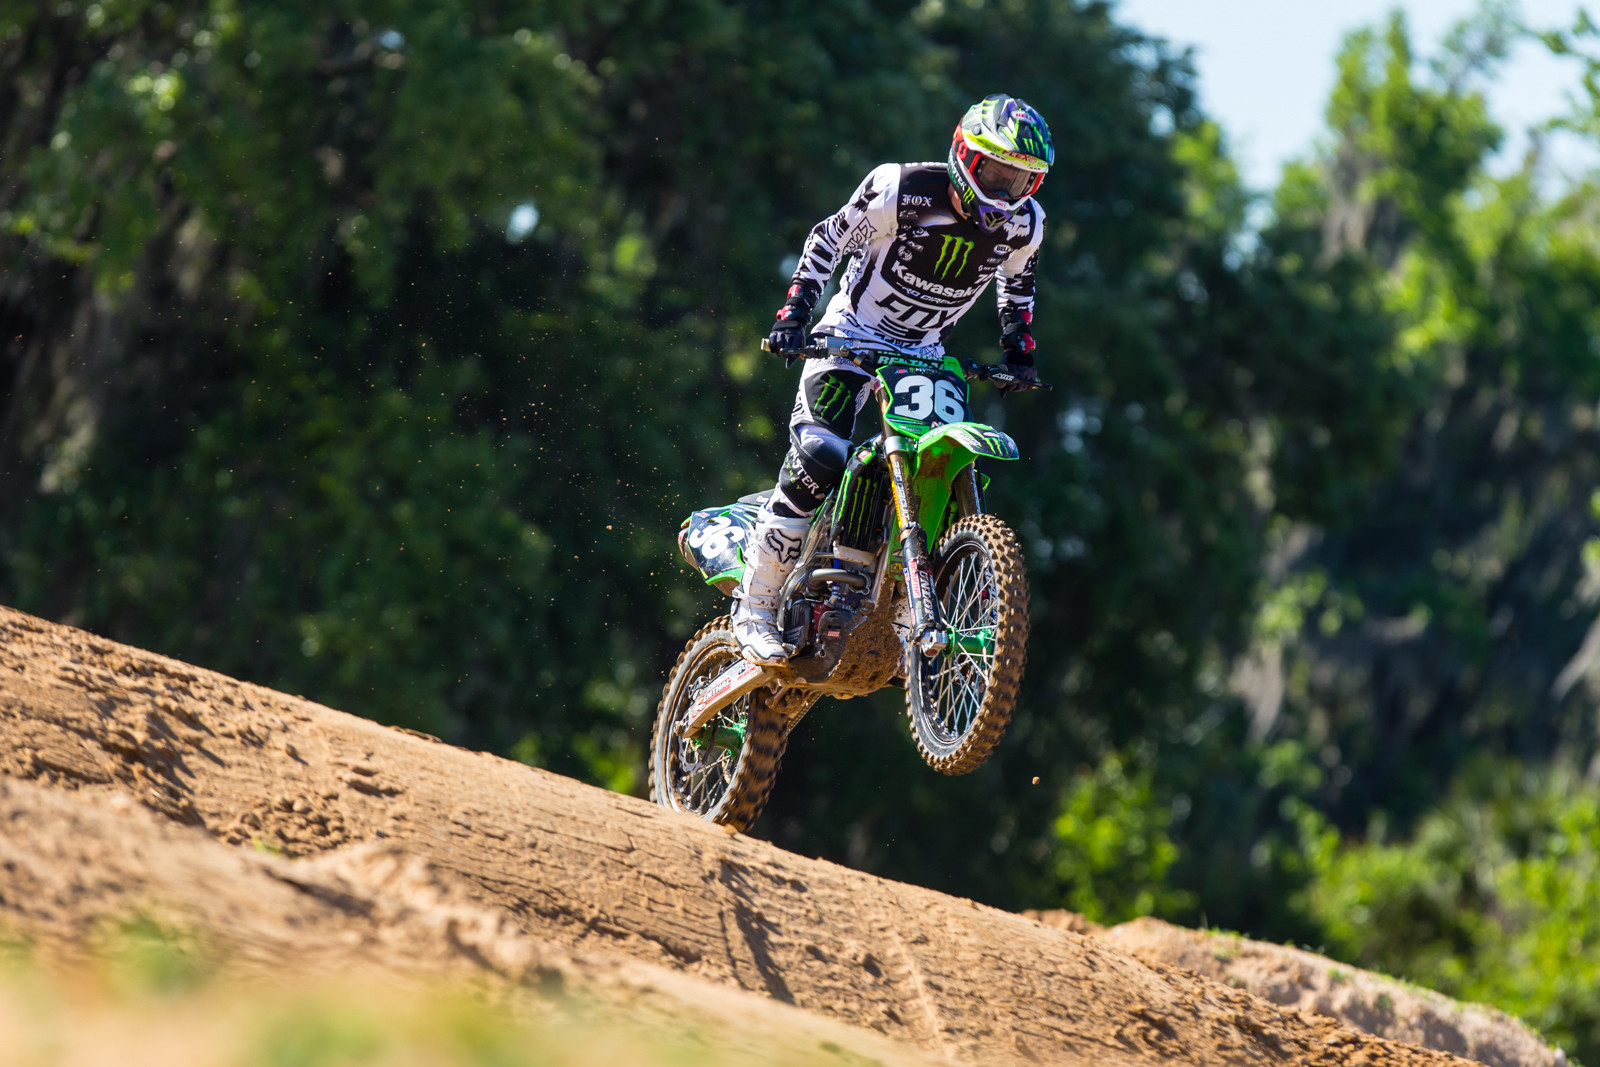 Adam Cianciarulo - Photo Gallery: The Nest, Goat Farm, and MTF - Motocross Pictures - Vital MX